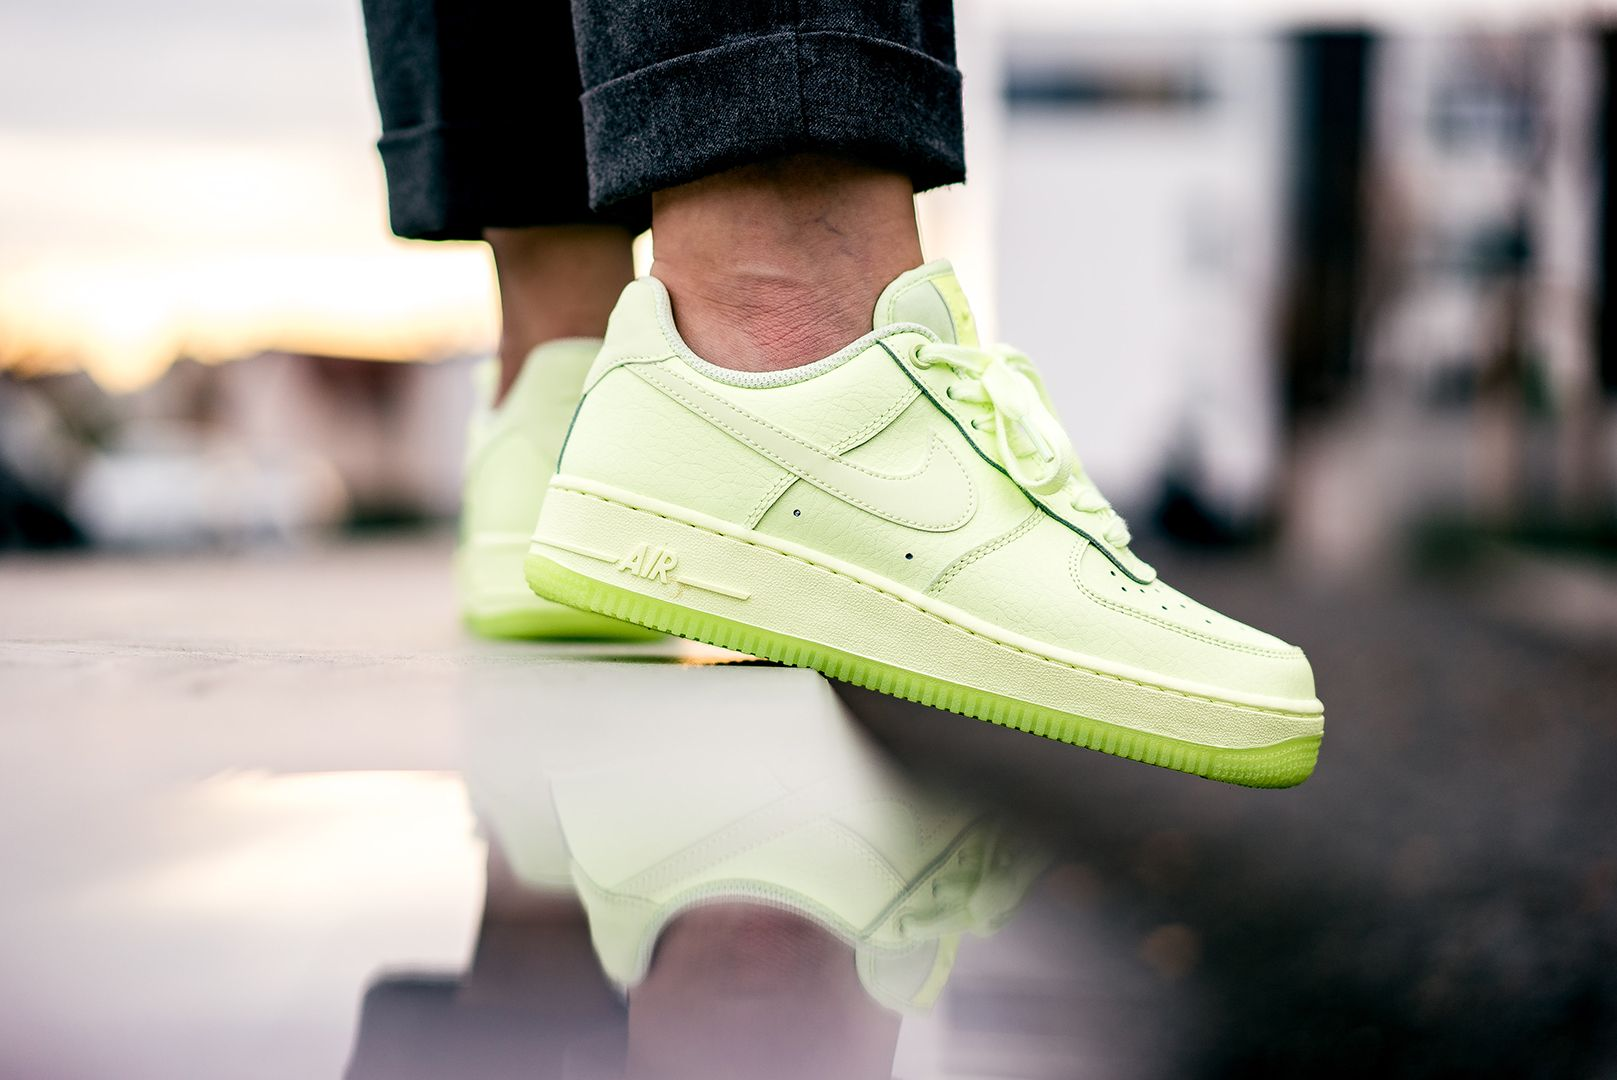 The Nike WMNS Air Force 1 '07 Essential is available in our ...